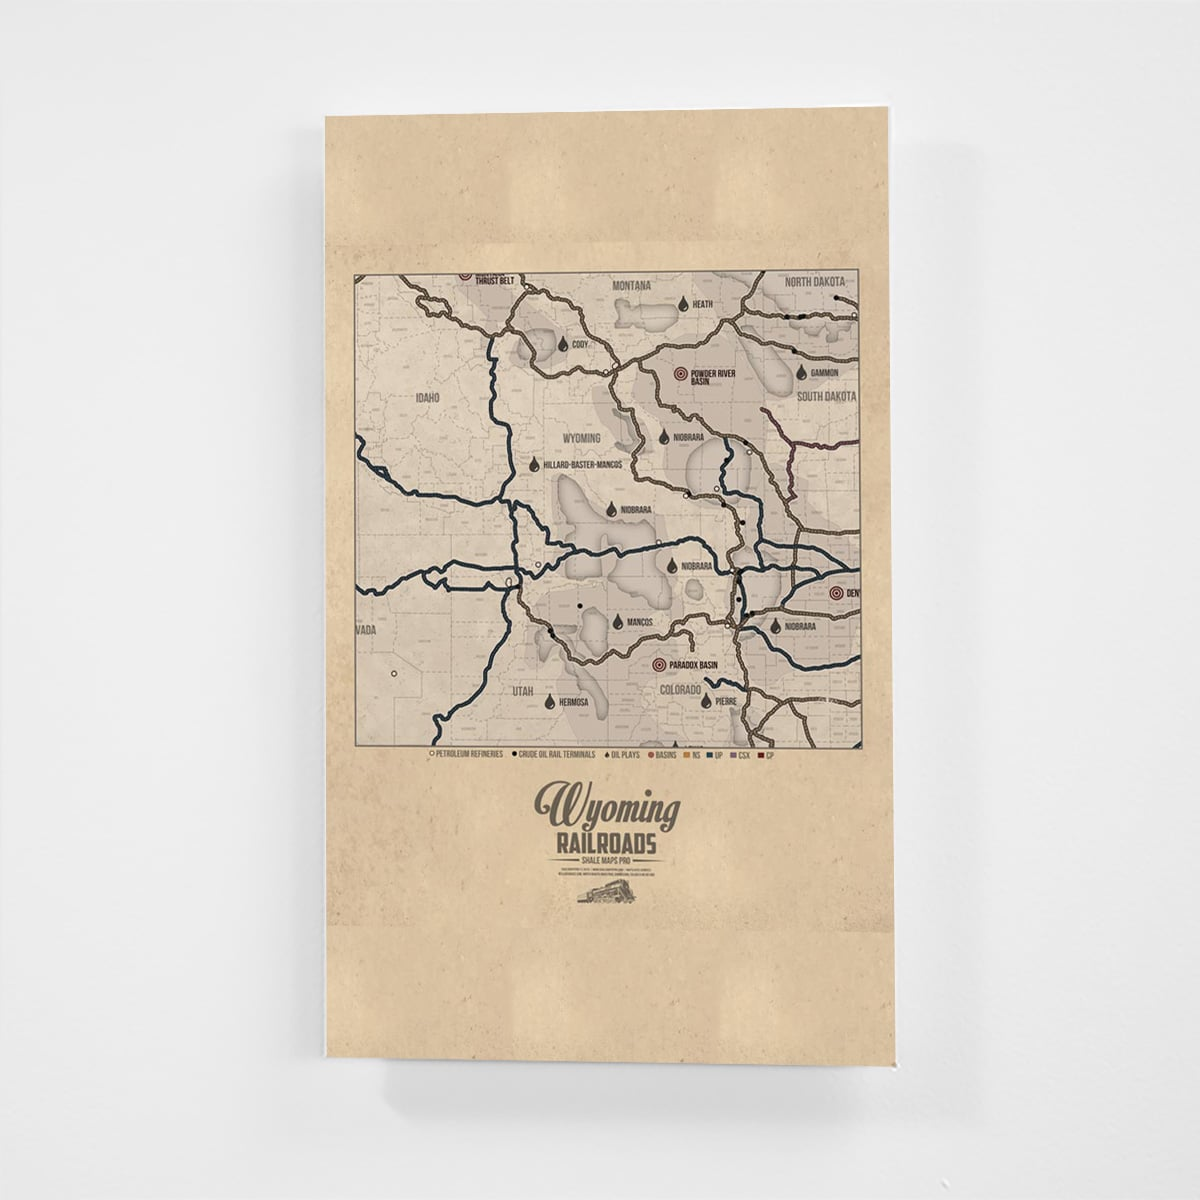 Wyoming Railroad Map & Shale Oil Plays Map